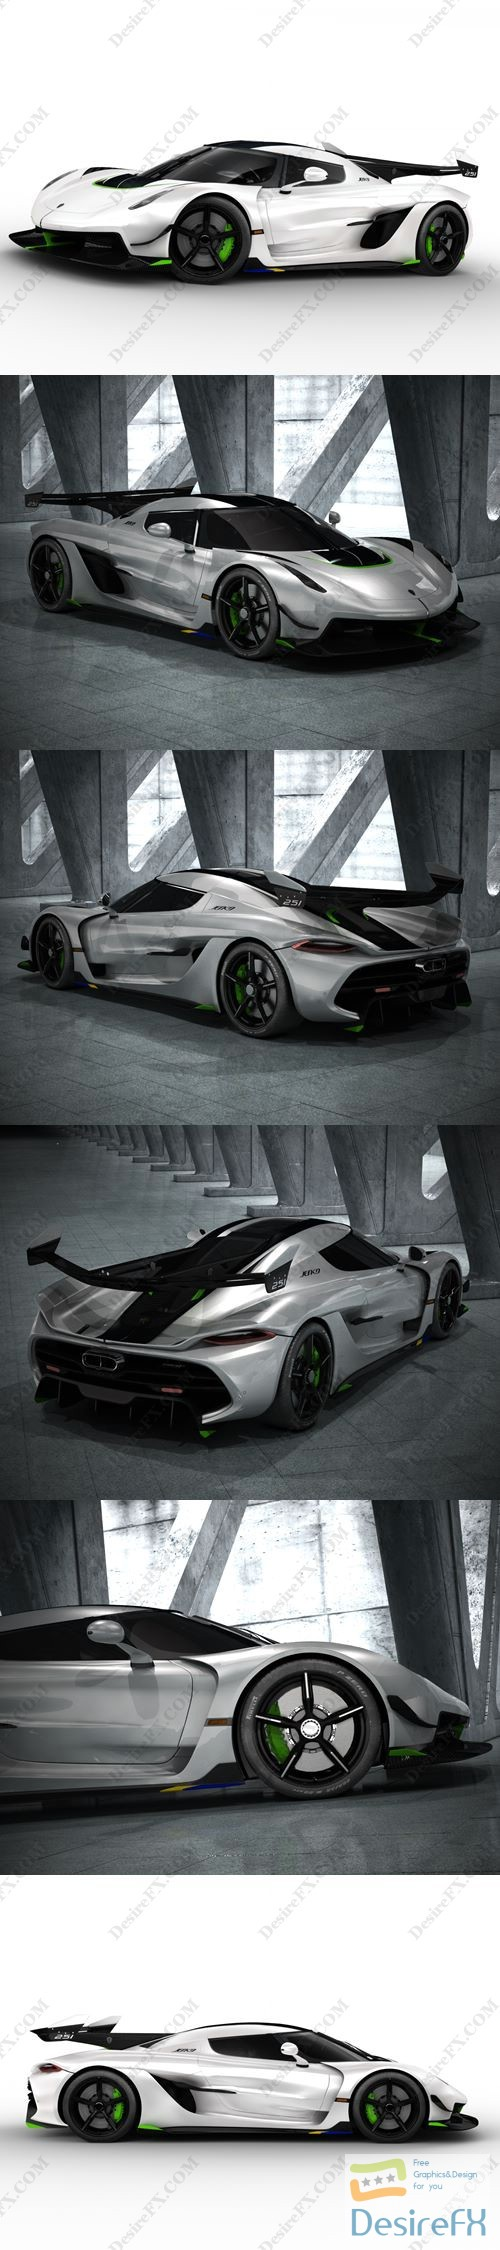 3d-models - Koenigsegg Jesko 2020 3D Model